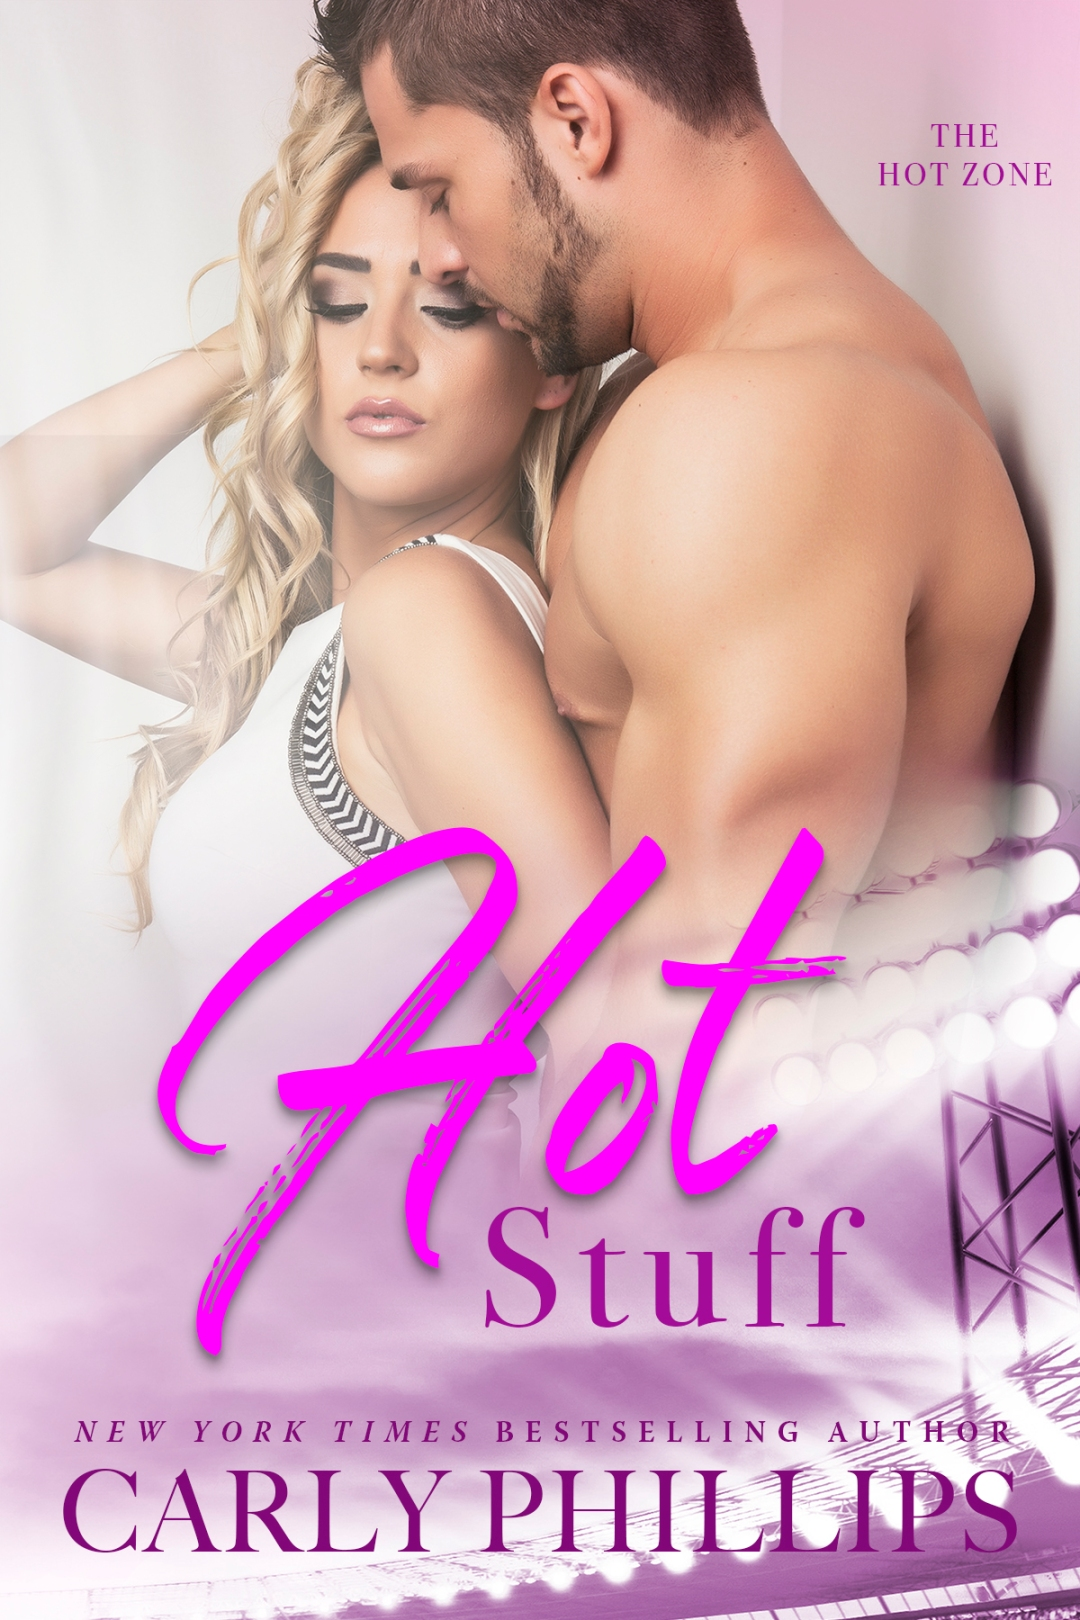 Hot Stuff | Carly Phillips